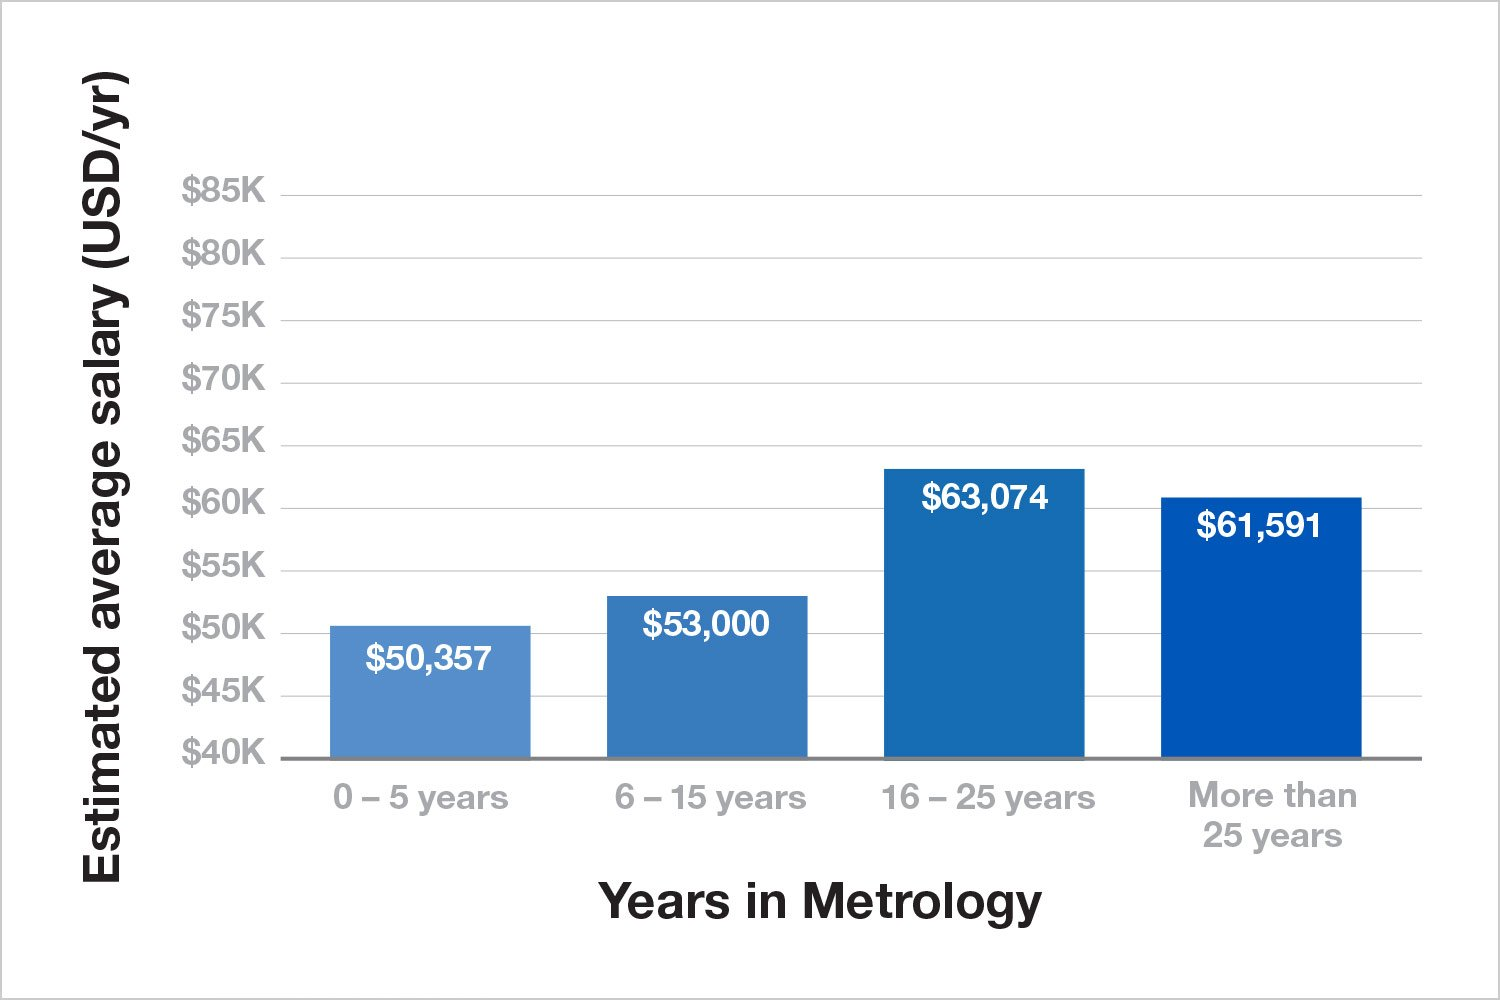 Years in metrology bar graph